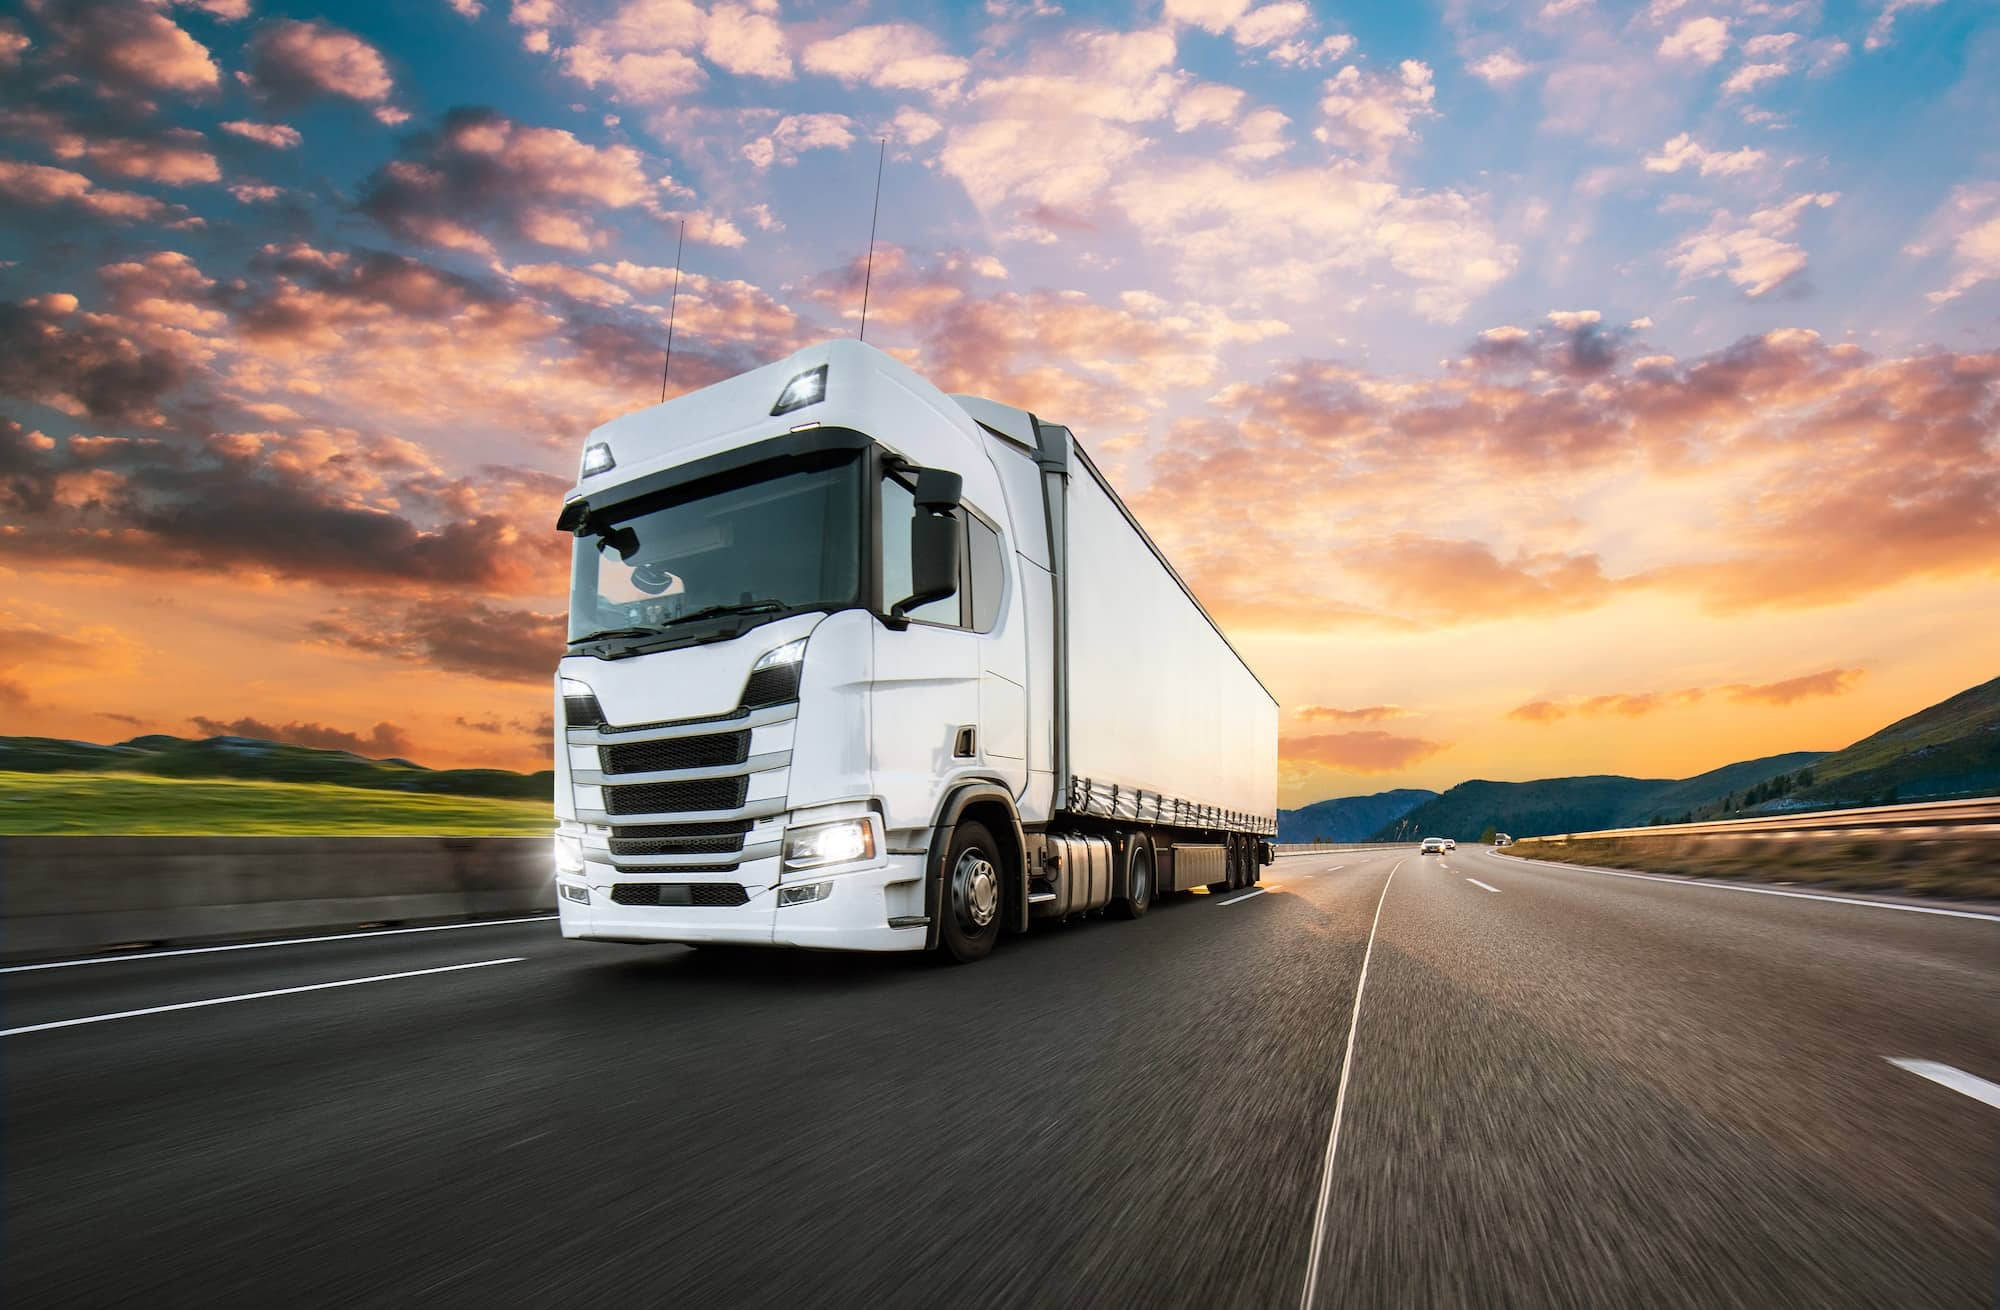 Truck delivery app Trukker lands $23M in the latest Series A funding round